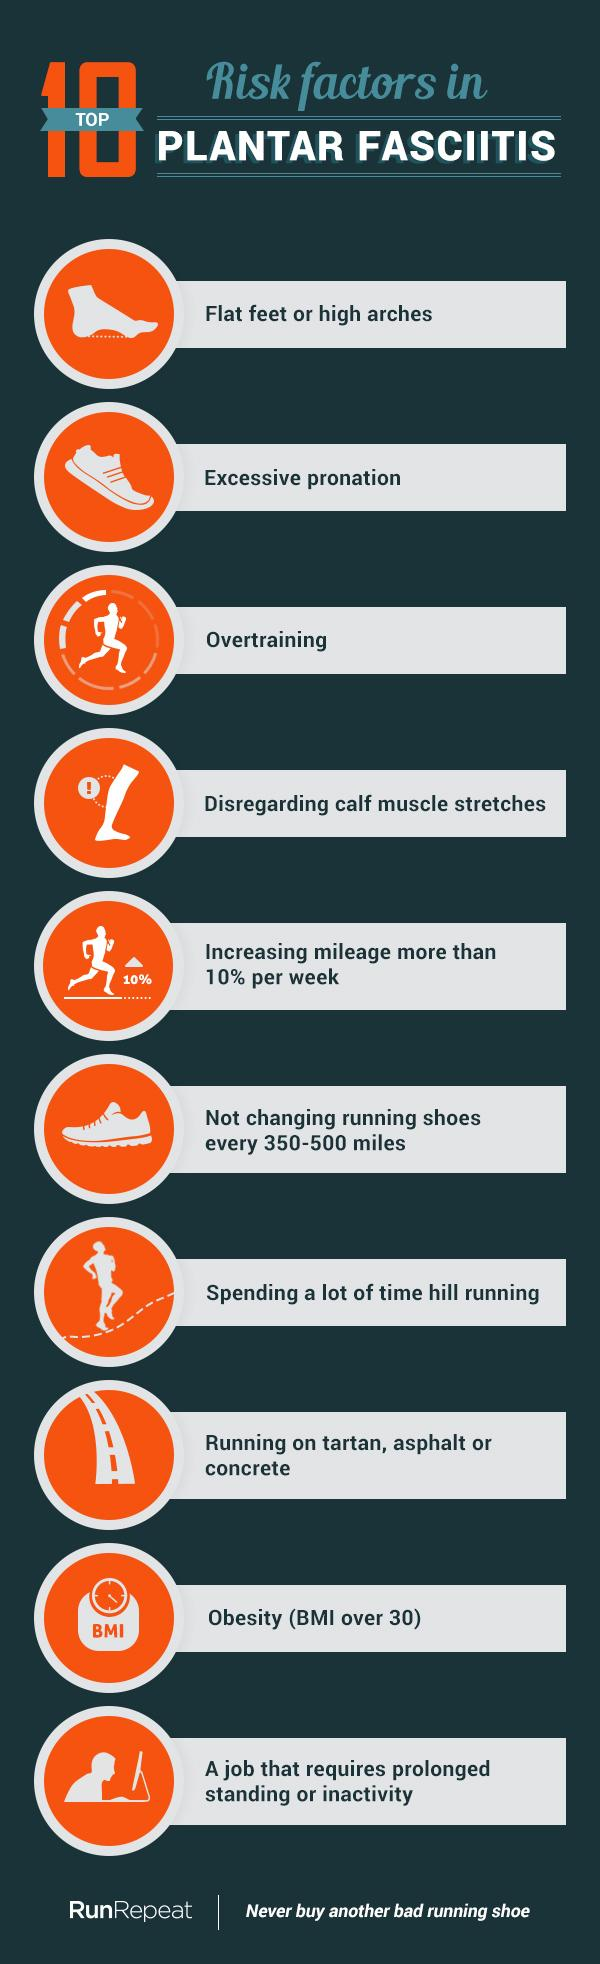 10 Risk factors in Plantar Fasciitis